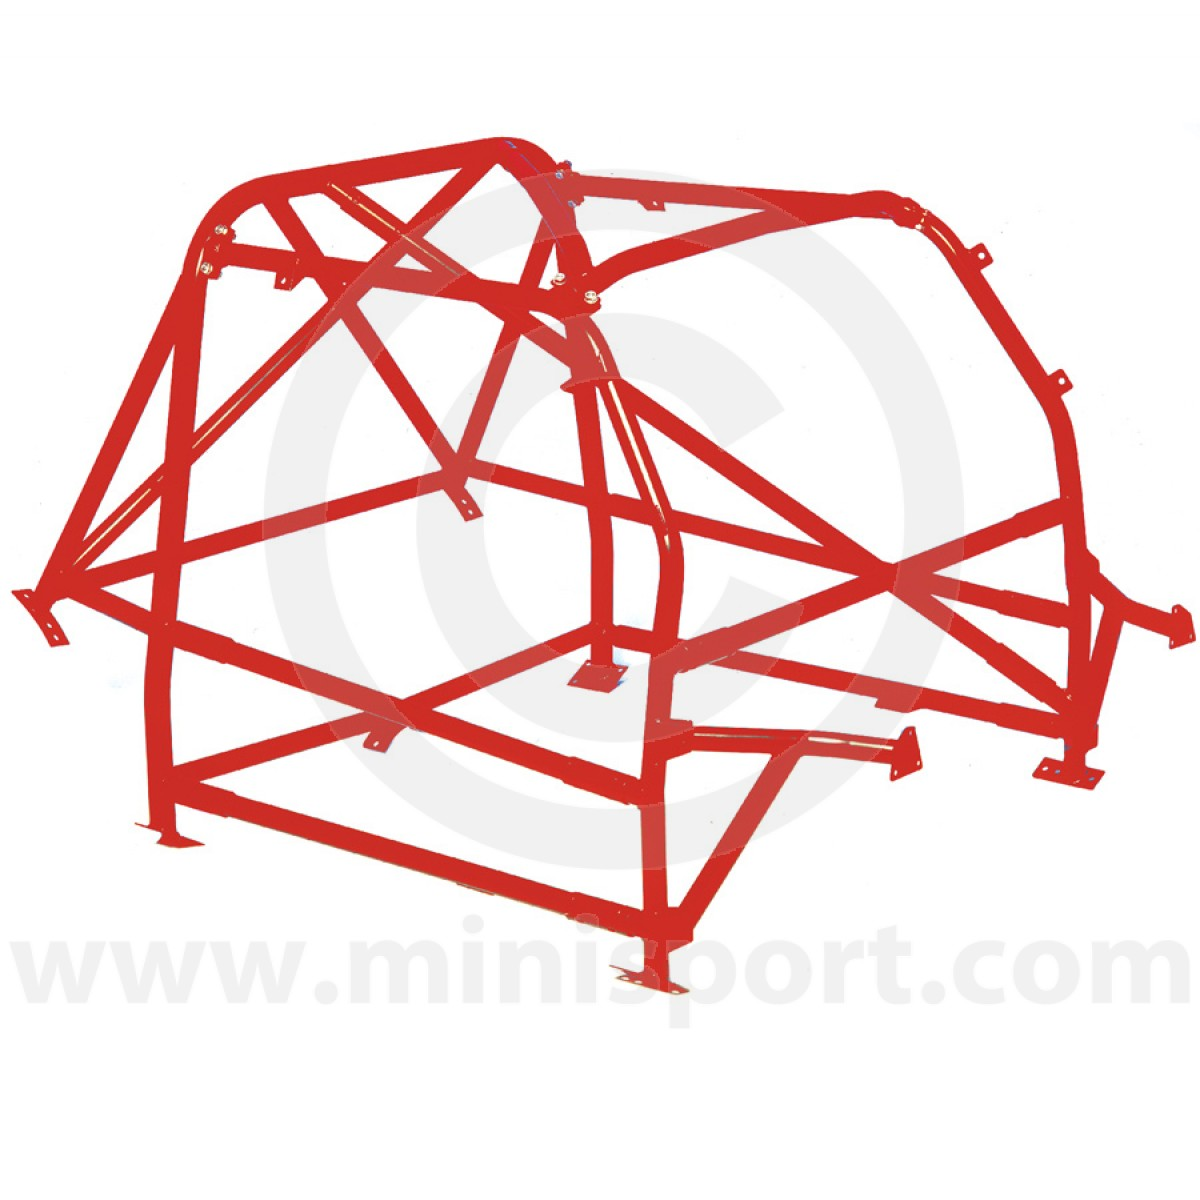 Rbn926ssu Mini Weld In Roll Cage Safety Devices 1275 Gt With Alternator And Rocker Type Switches Ms0906 Multi Point Bolt